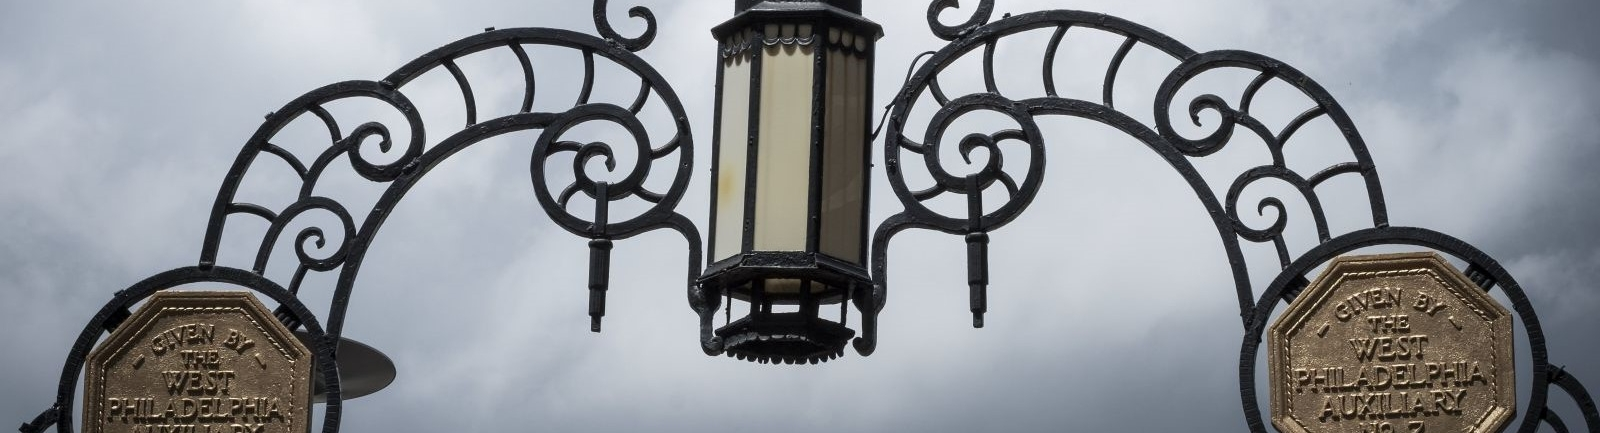 An historic iron gate and lamp on Temple University's Main Campus.